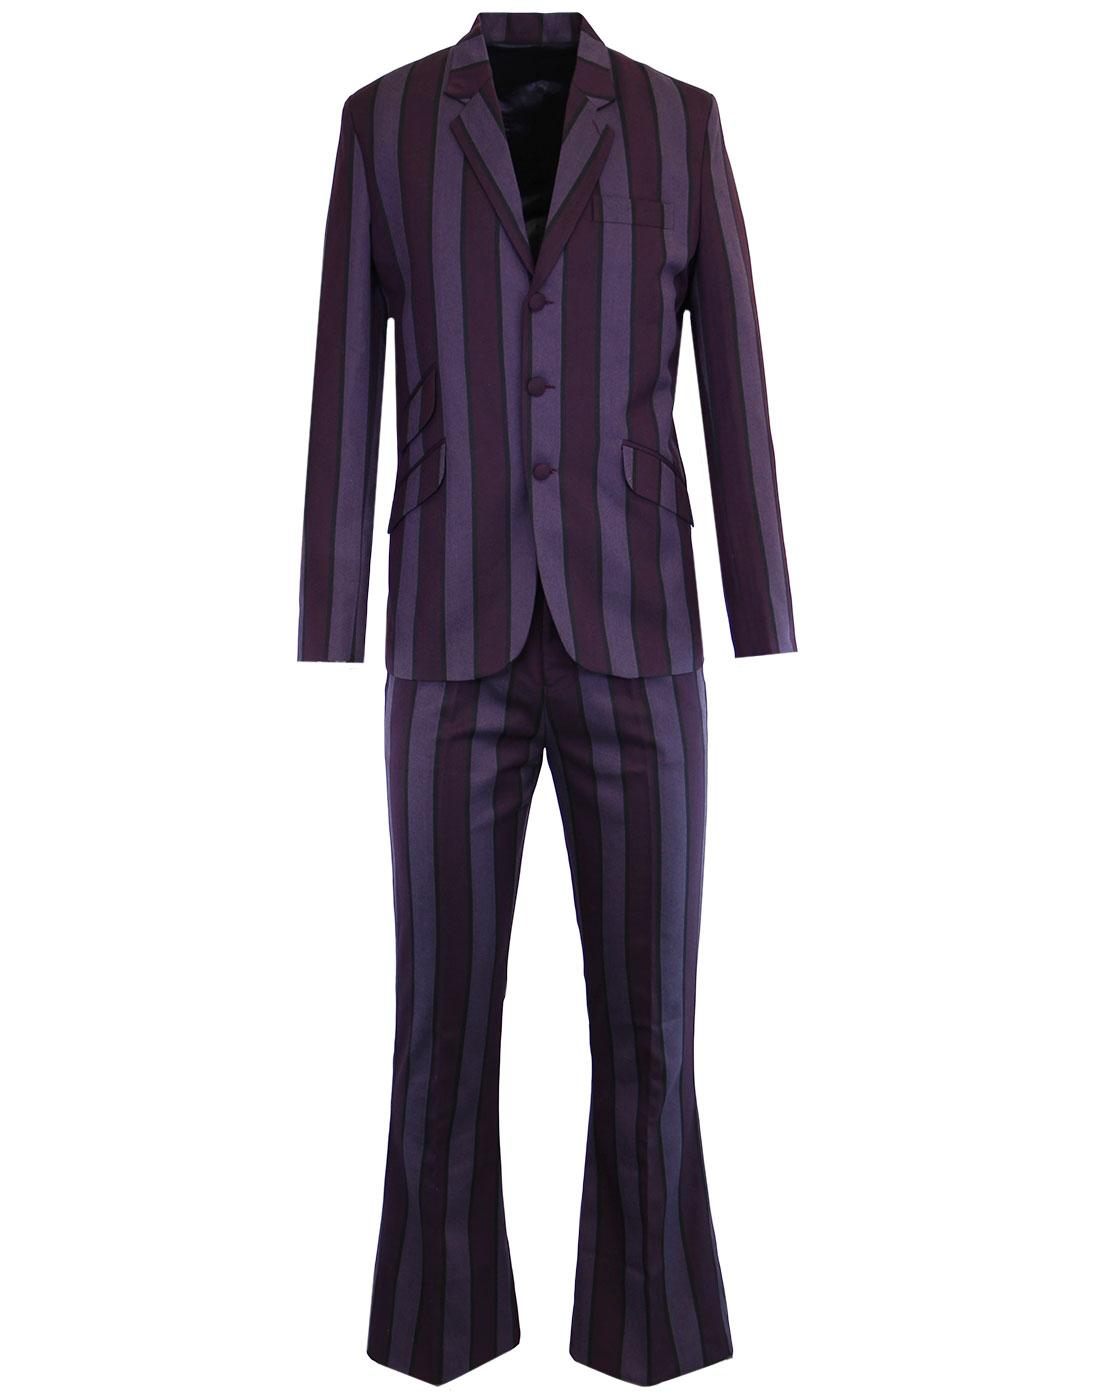 MADCAP ENGLAND Offbeat Mod 60s Flare Suit - Purple